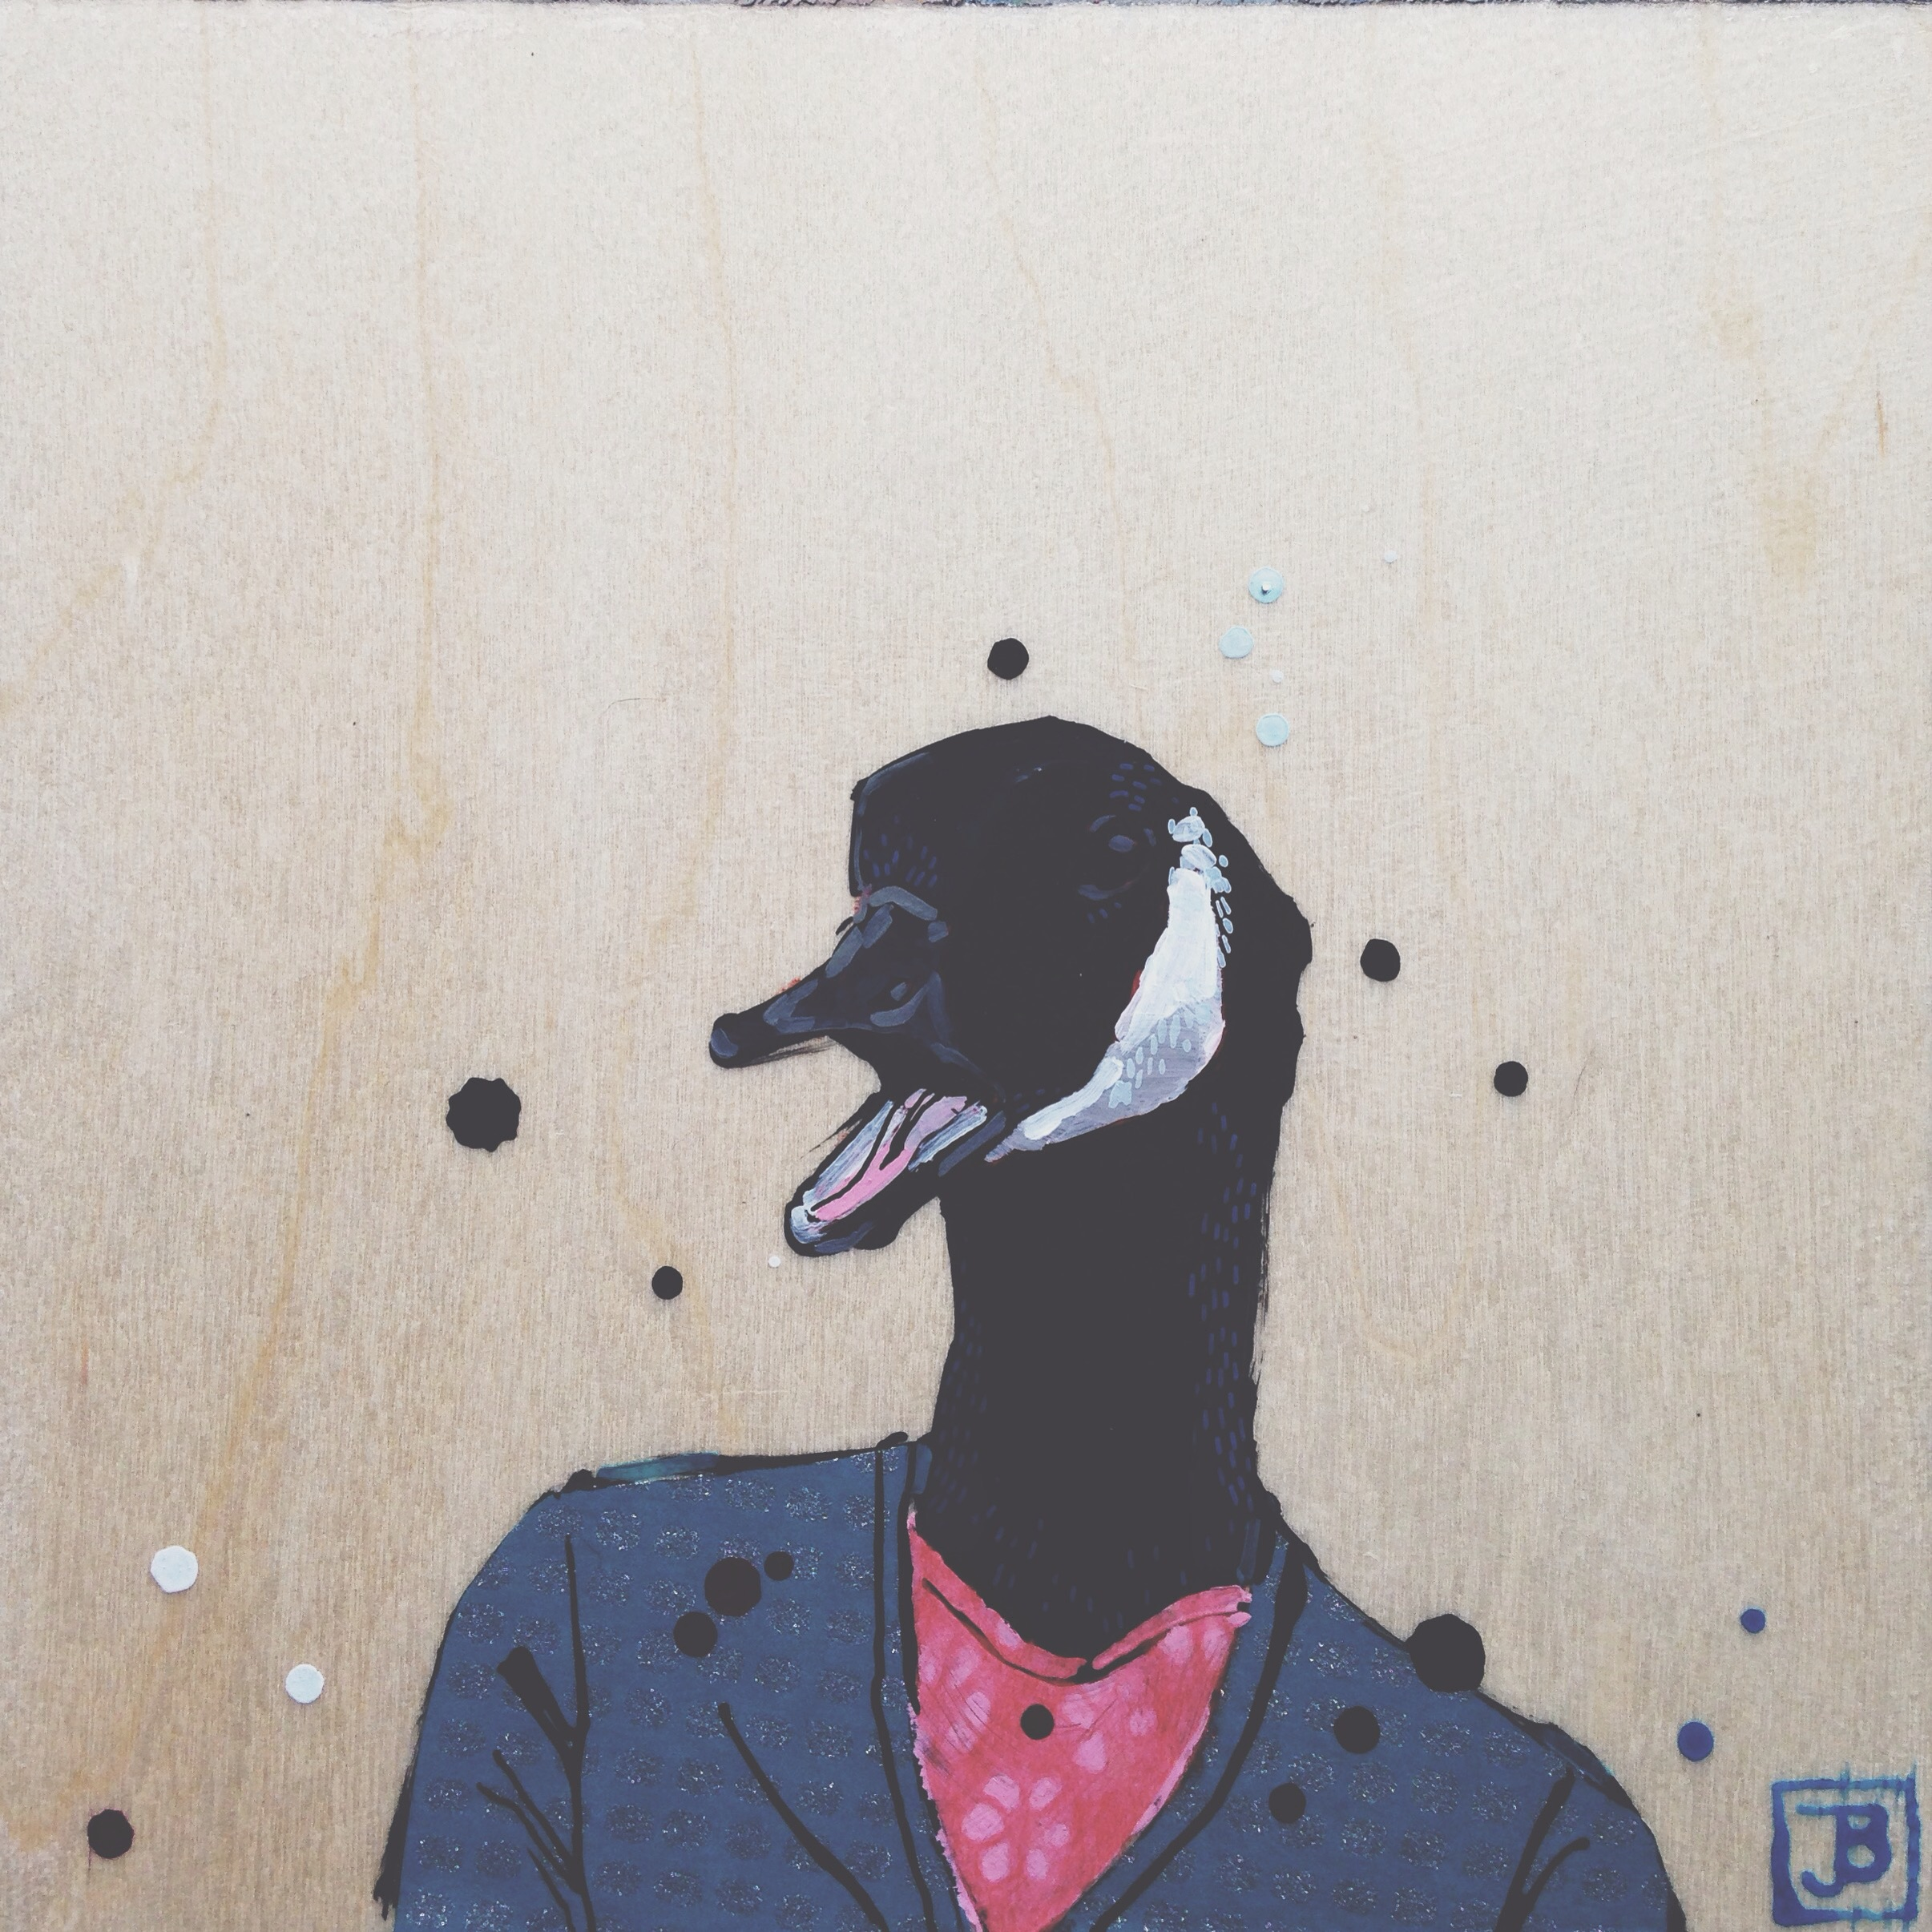 Canada goose, mixed media on wood panel, 8x8, 2016